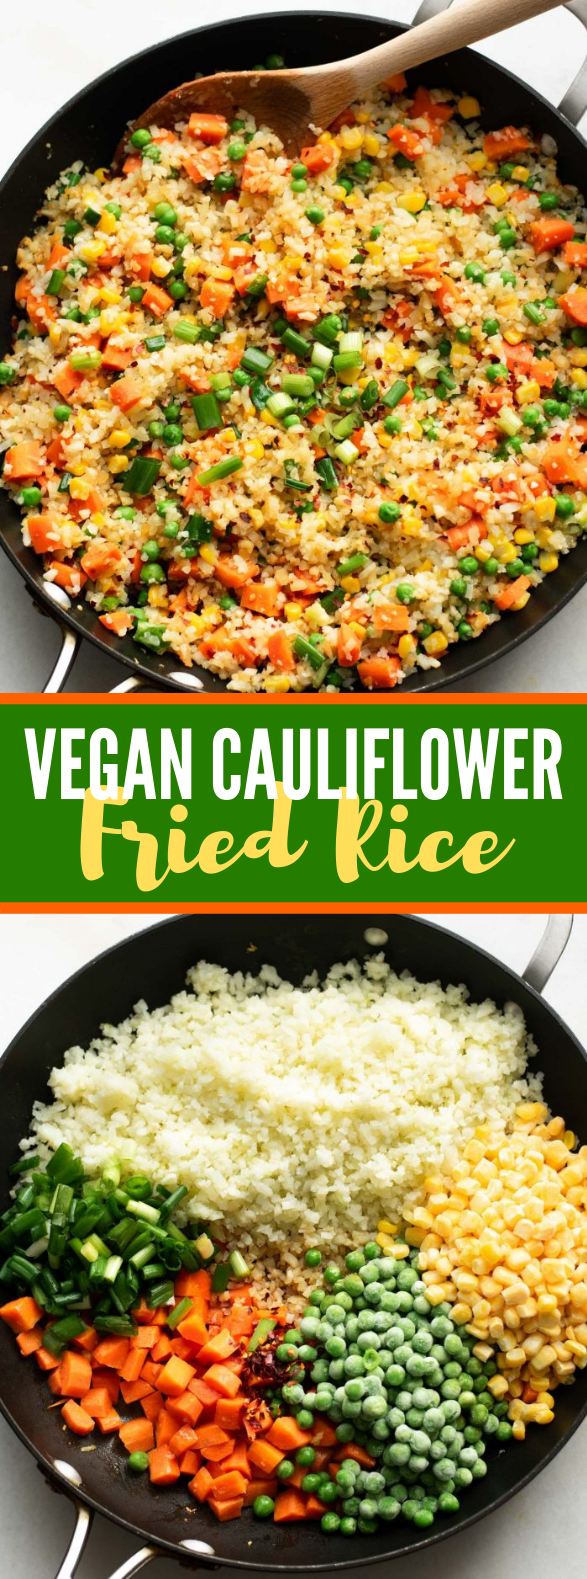 HEALTHY VEGAN CAULIFLOWER FRIED RICE #veganrecipe #lowcarb